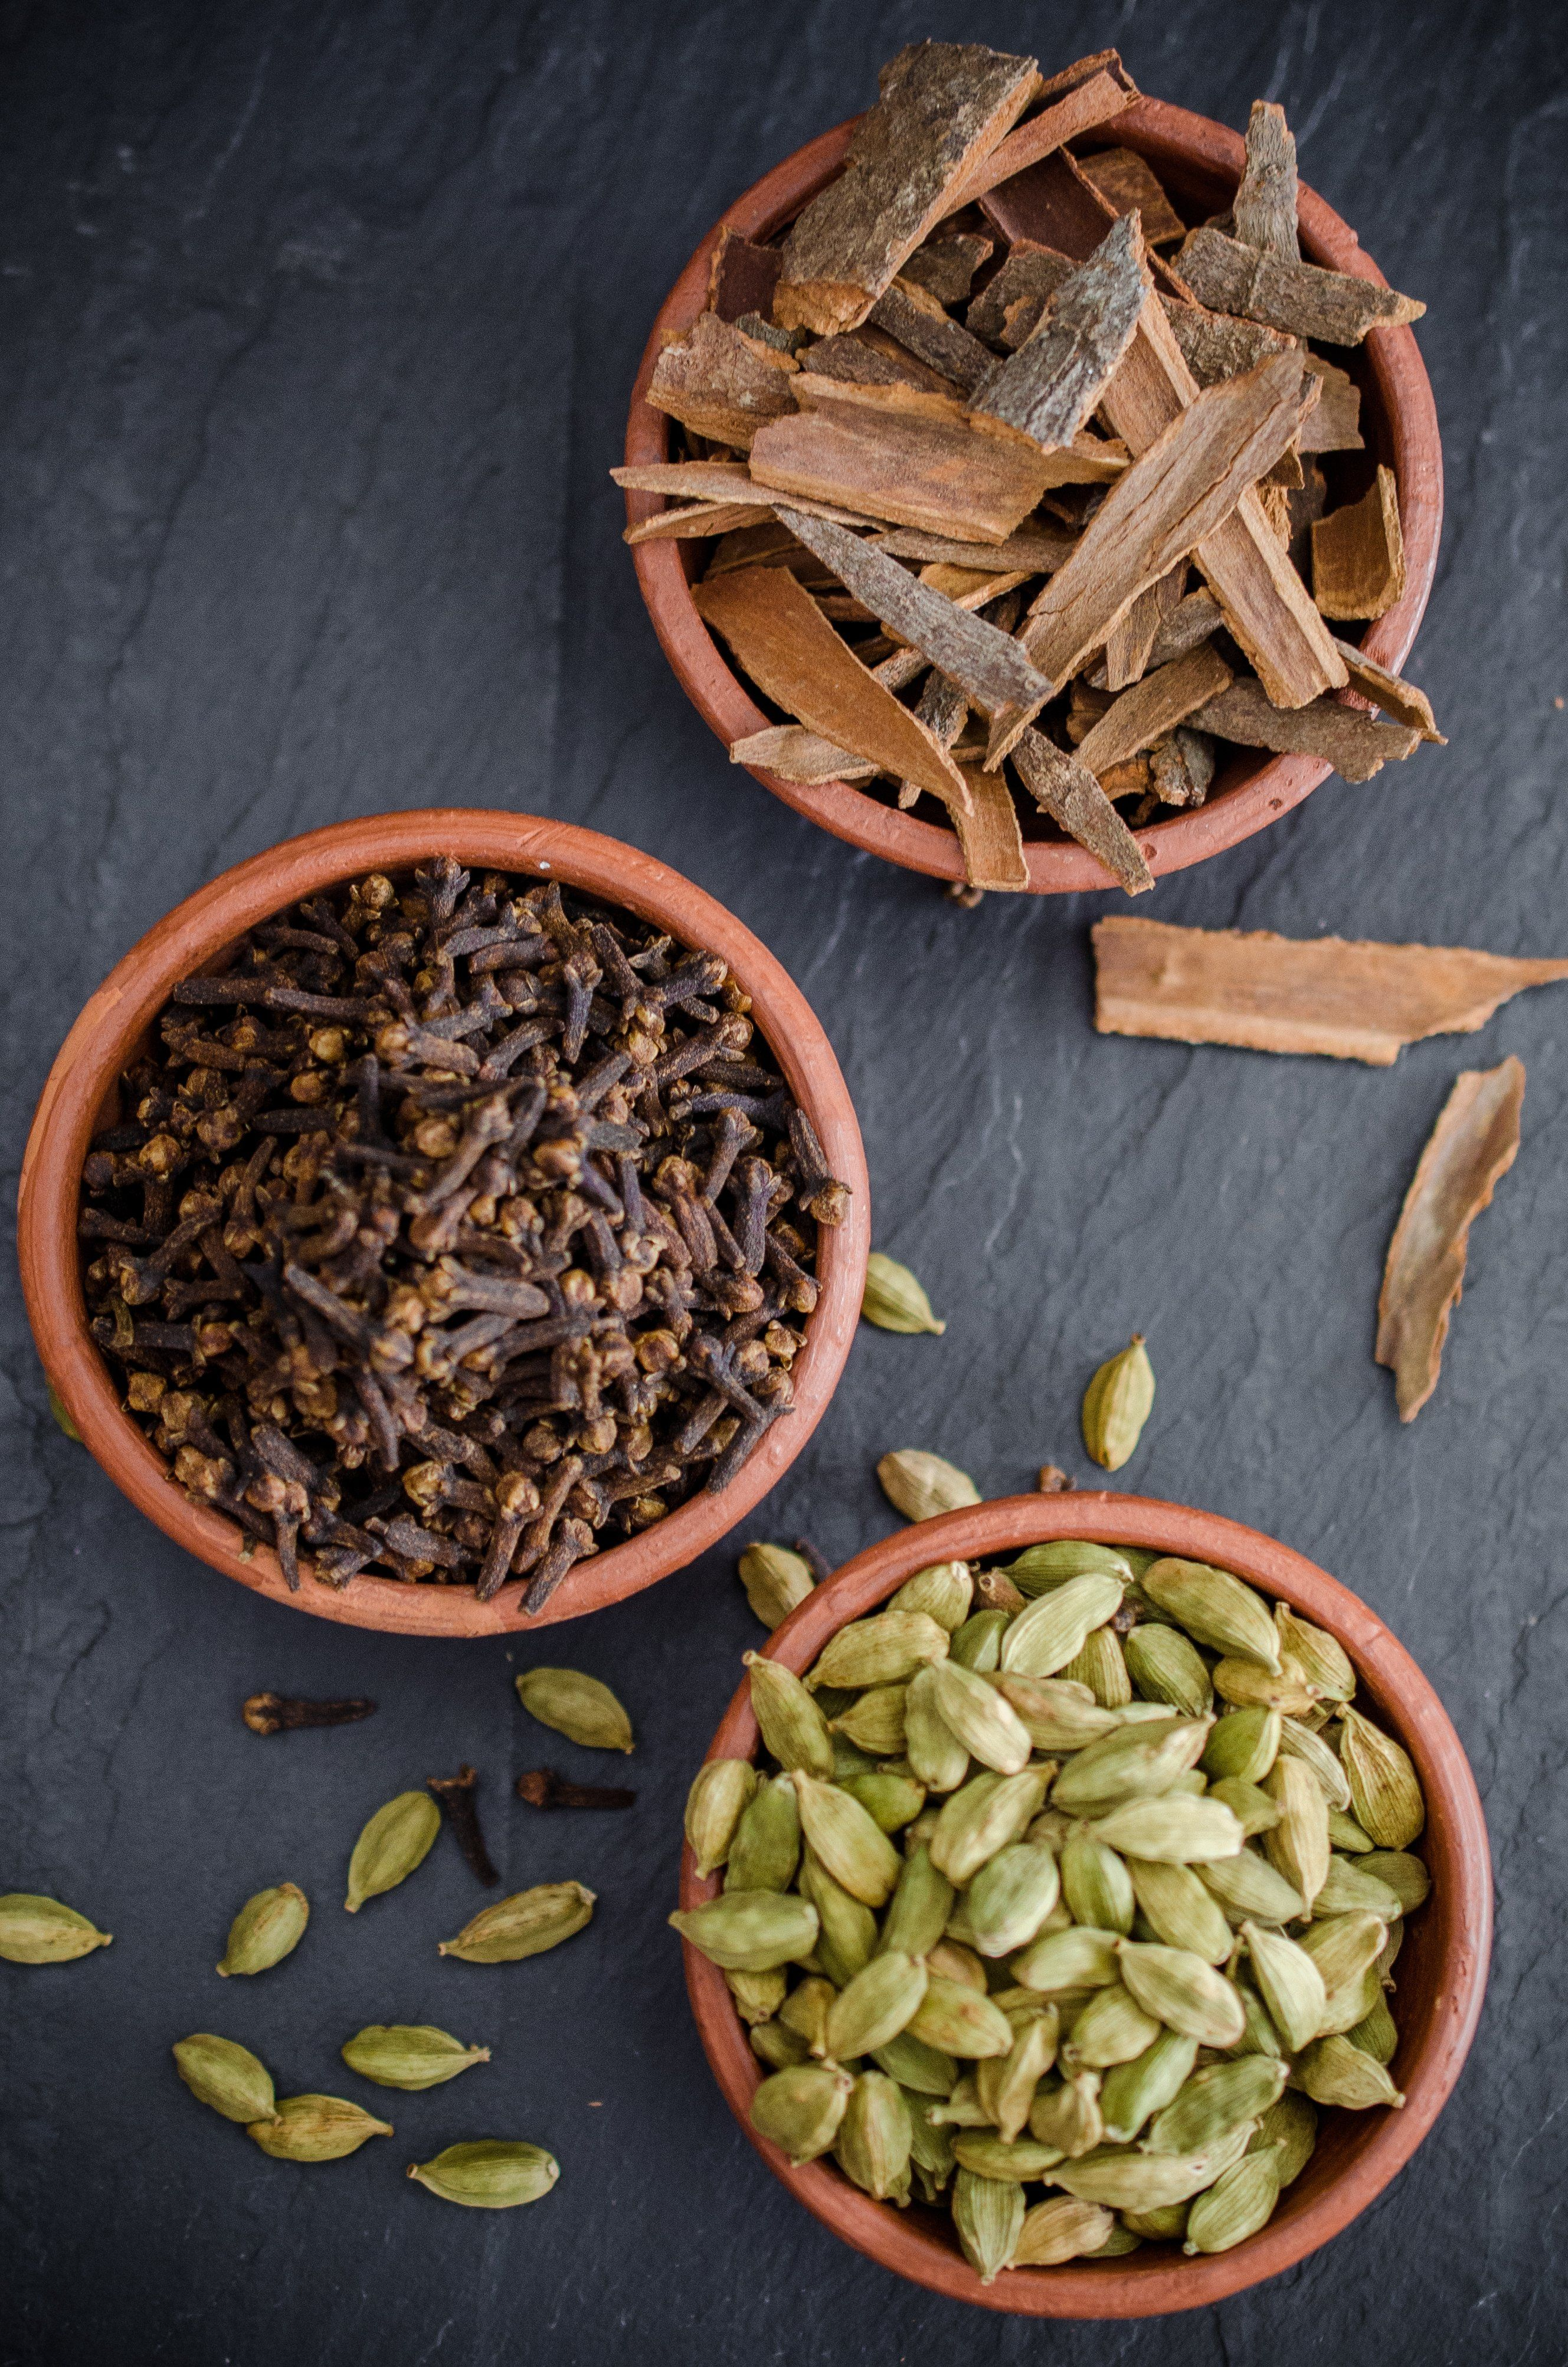 11 essential spices for indian cooking essentials food and recipes 11 essential spices for indian cooking forumfinder Images